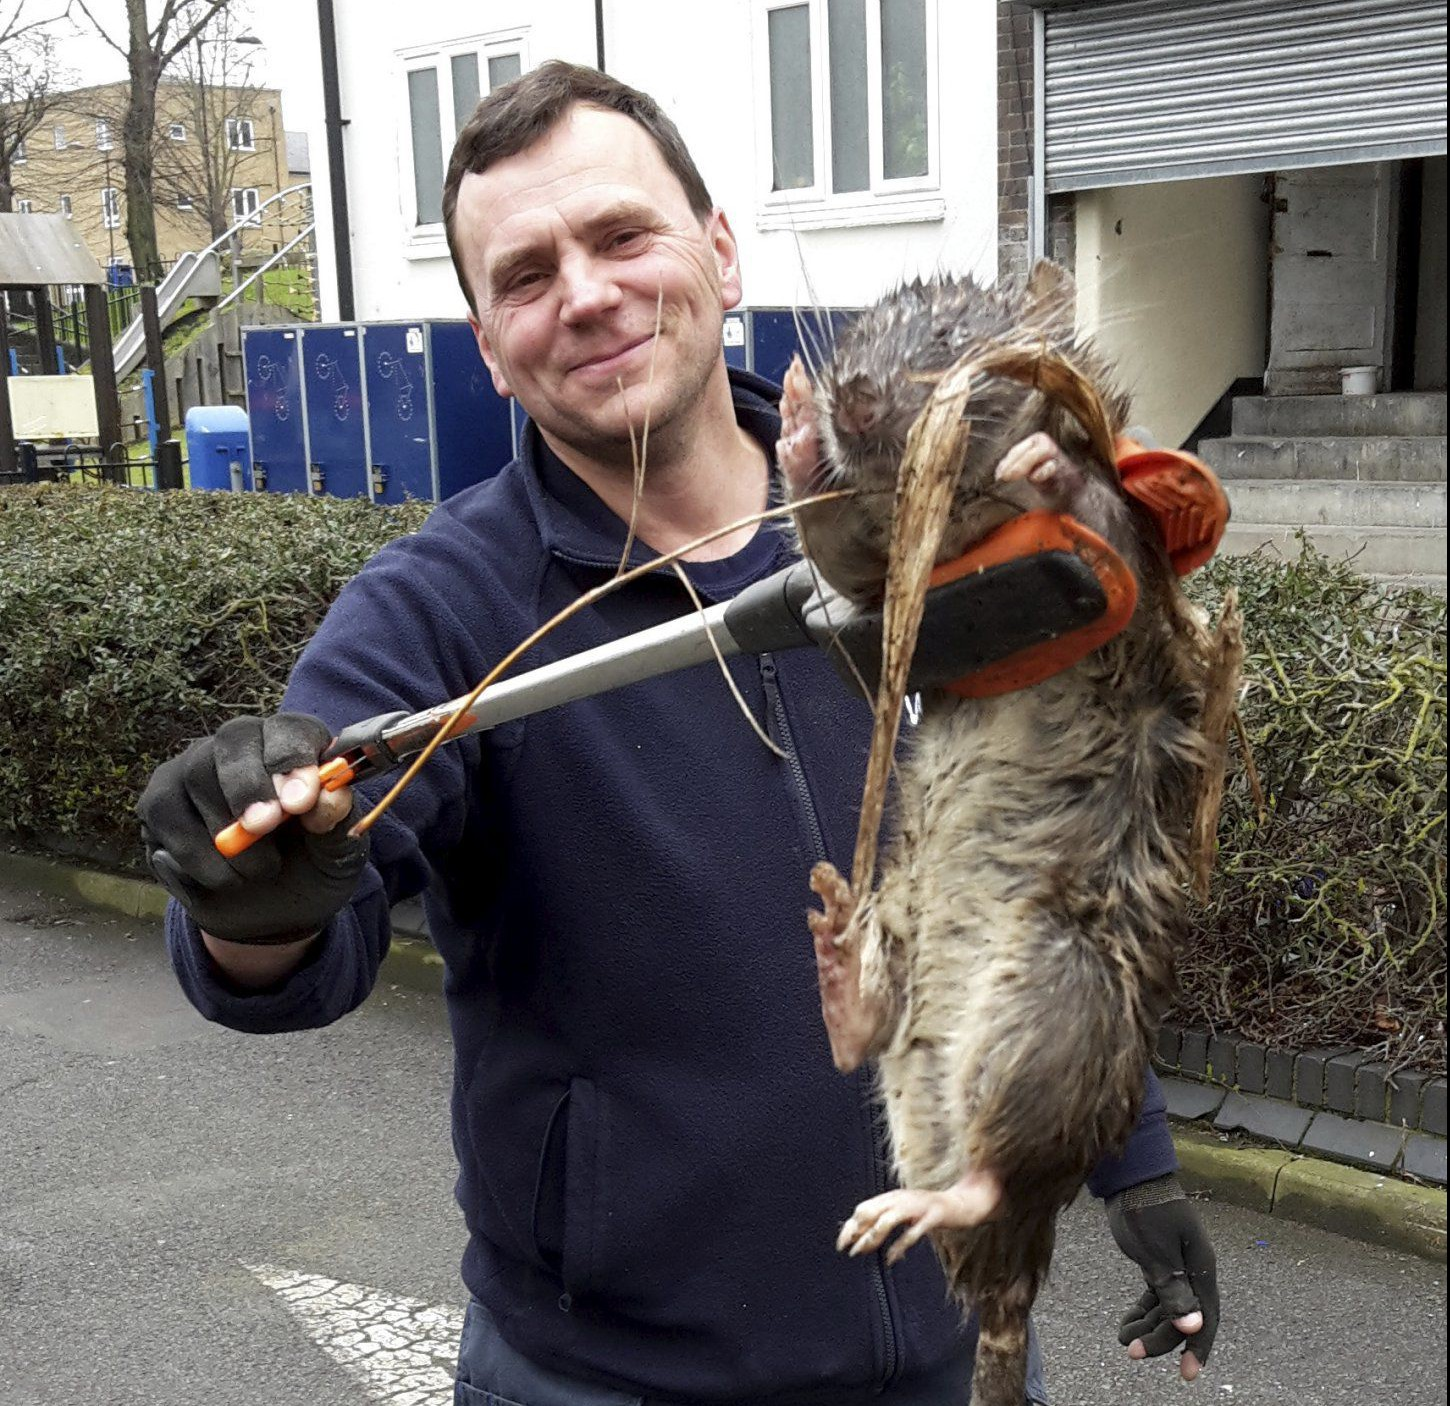 Was the '4ft monster rat' just a trick of perspective?